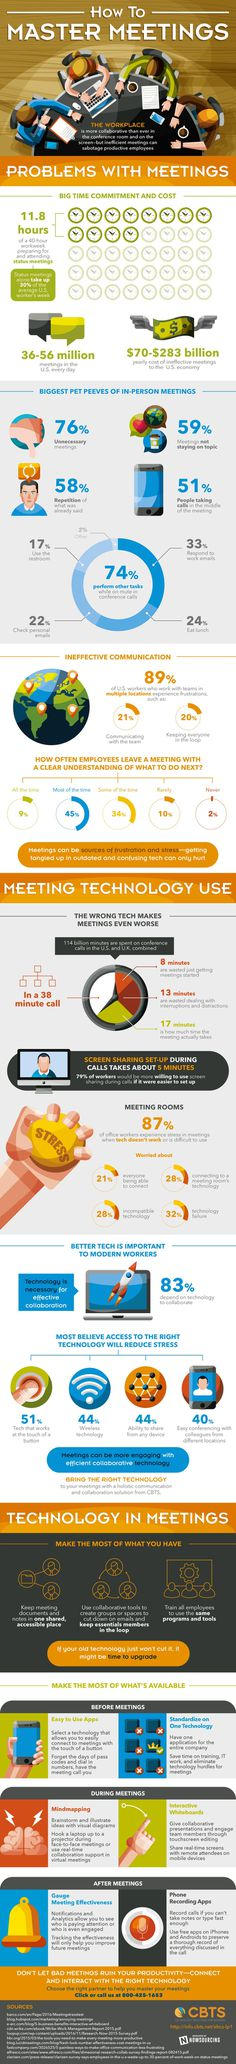 How to master meetings - are you a master of meetings?